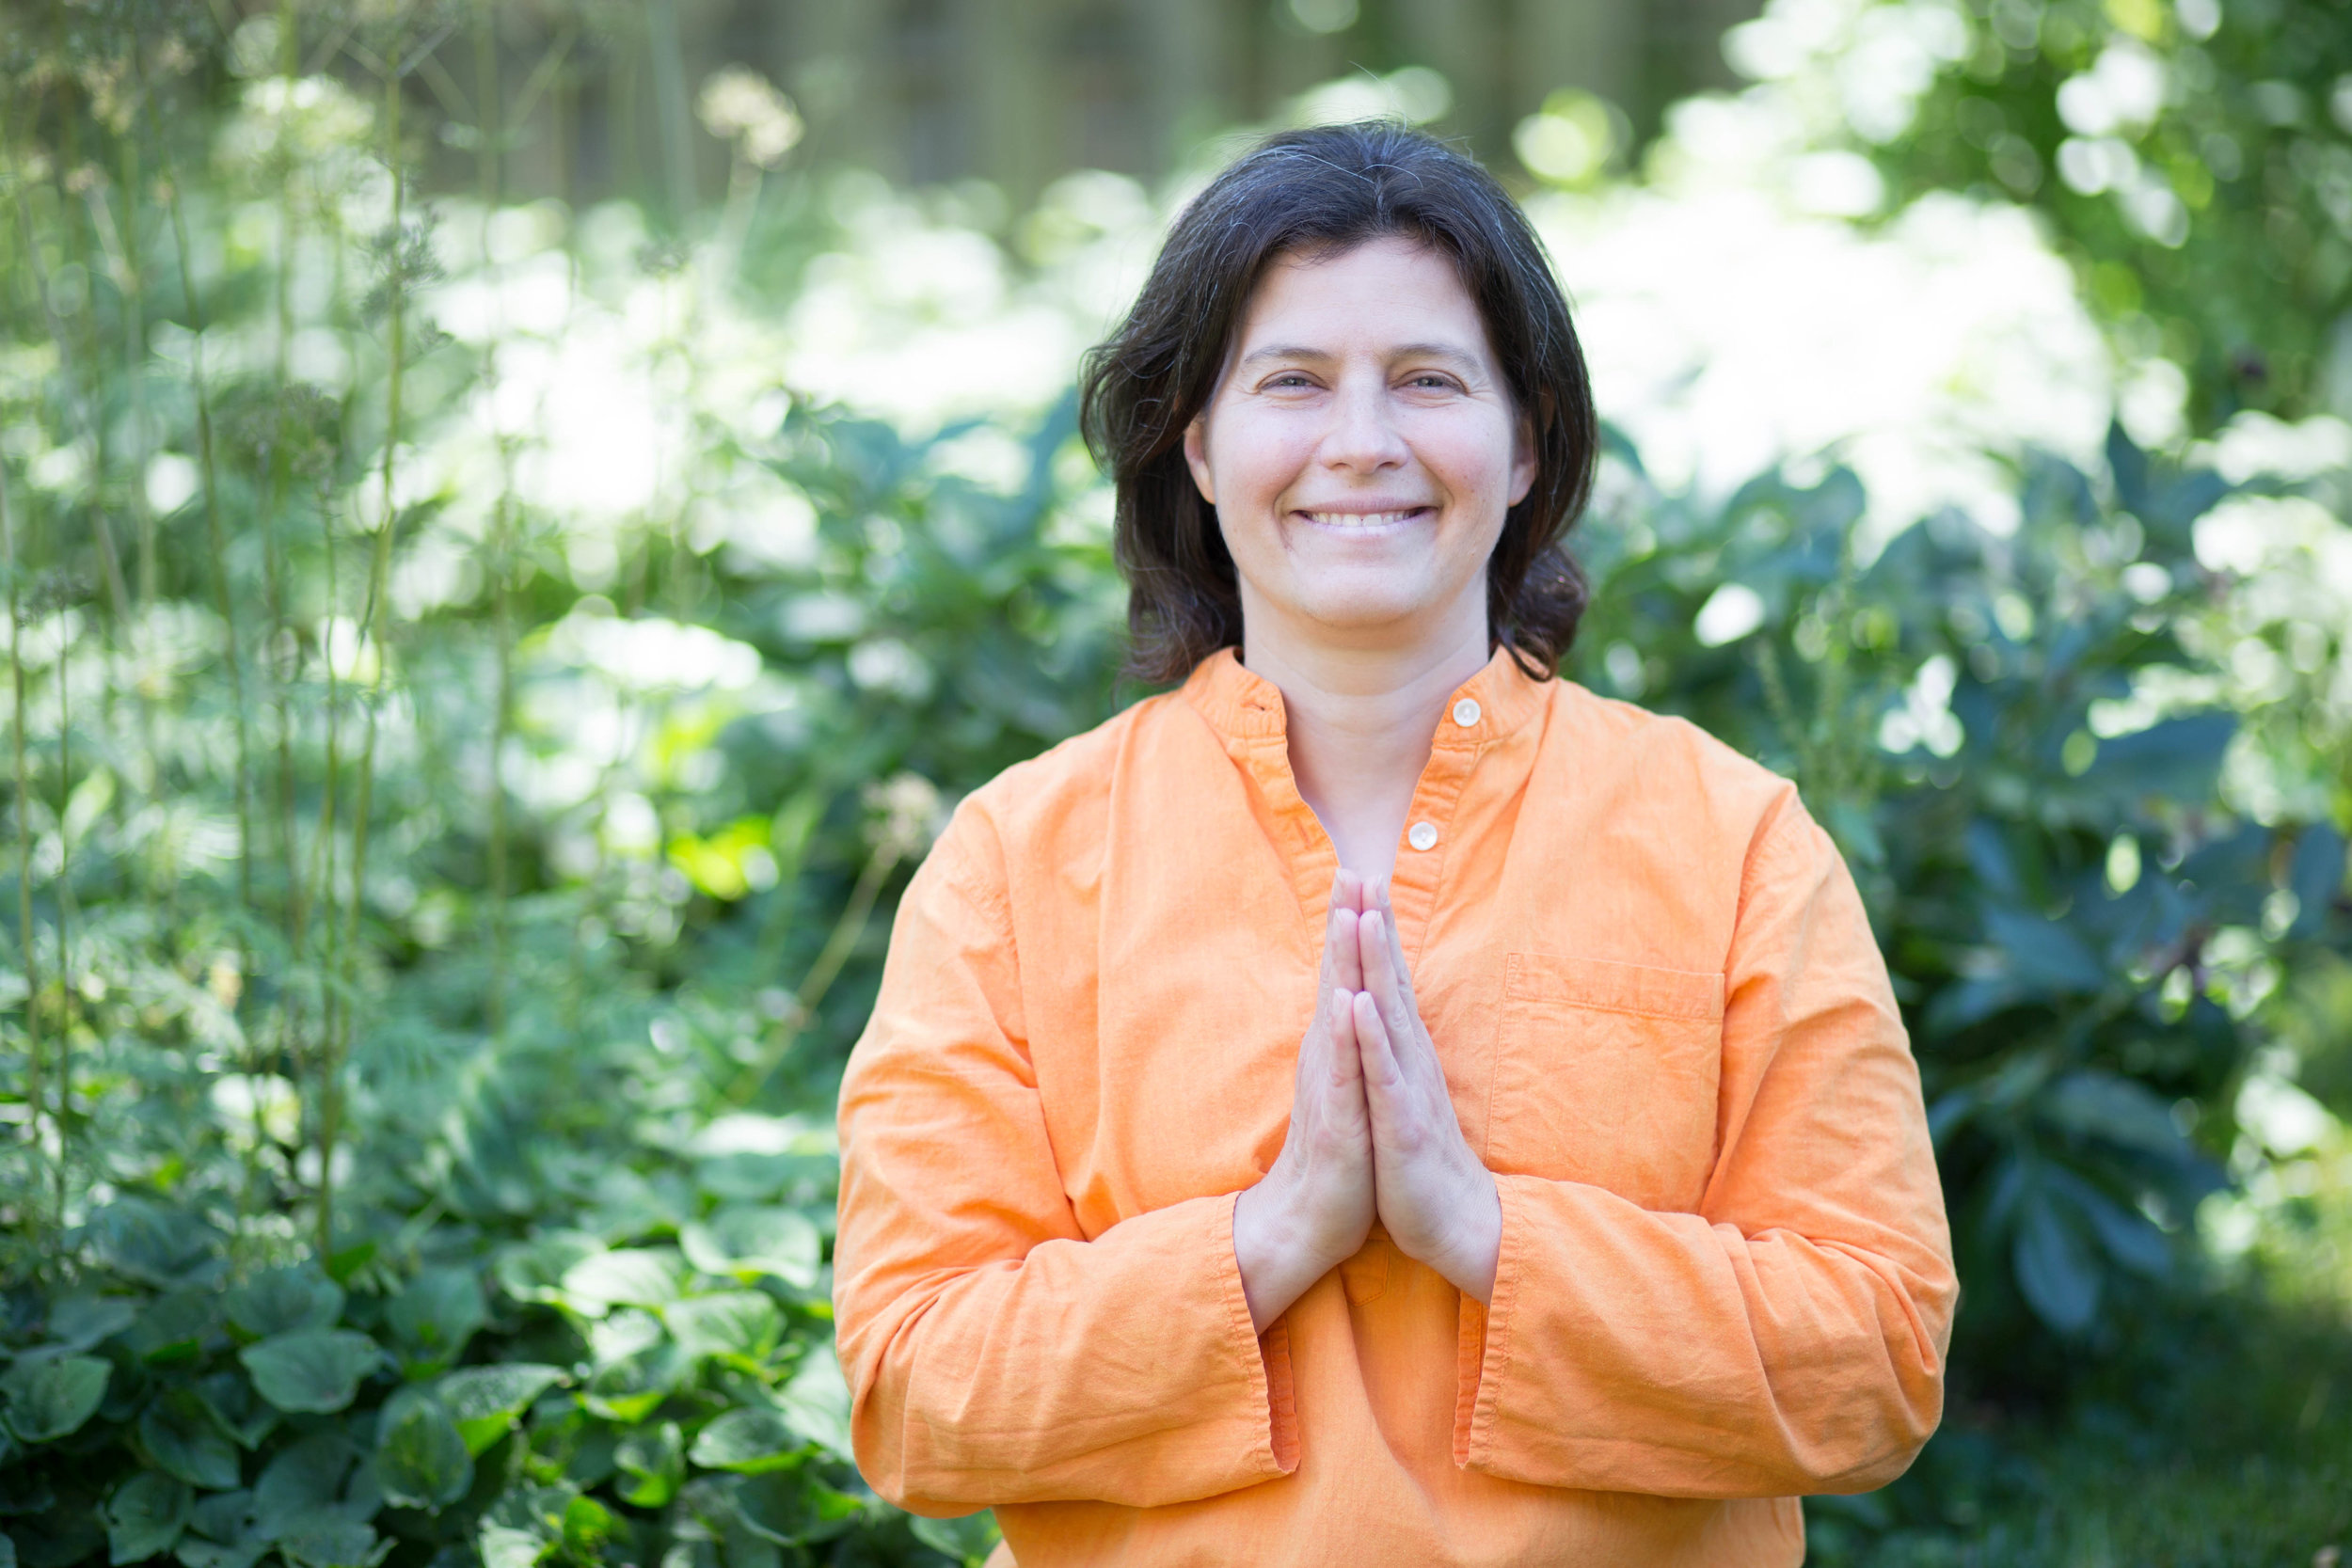 Atmadarshan (Laura Santoro) - teaches internationally on yoga, yoga psychology and the Bhagavad Gita. Her qualifications include ERYT-500, C-IAYT, YACEP, SY-AYT Level 2 and publication in the field of psychiatry. Learn more about Atmadarshan